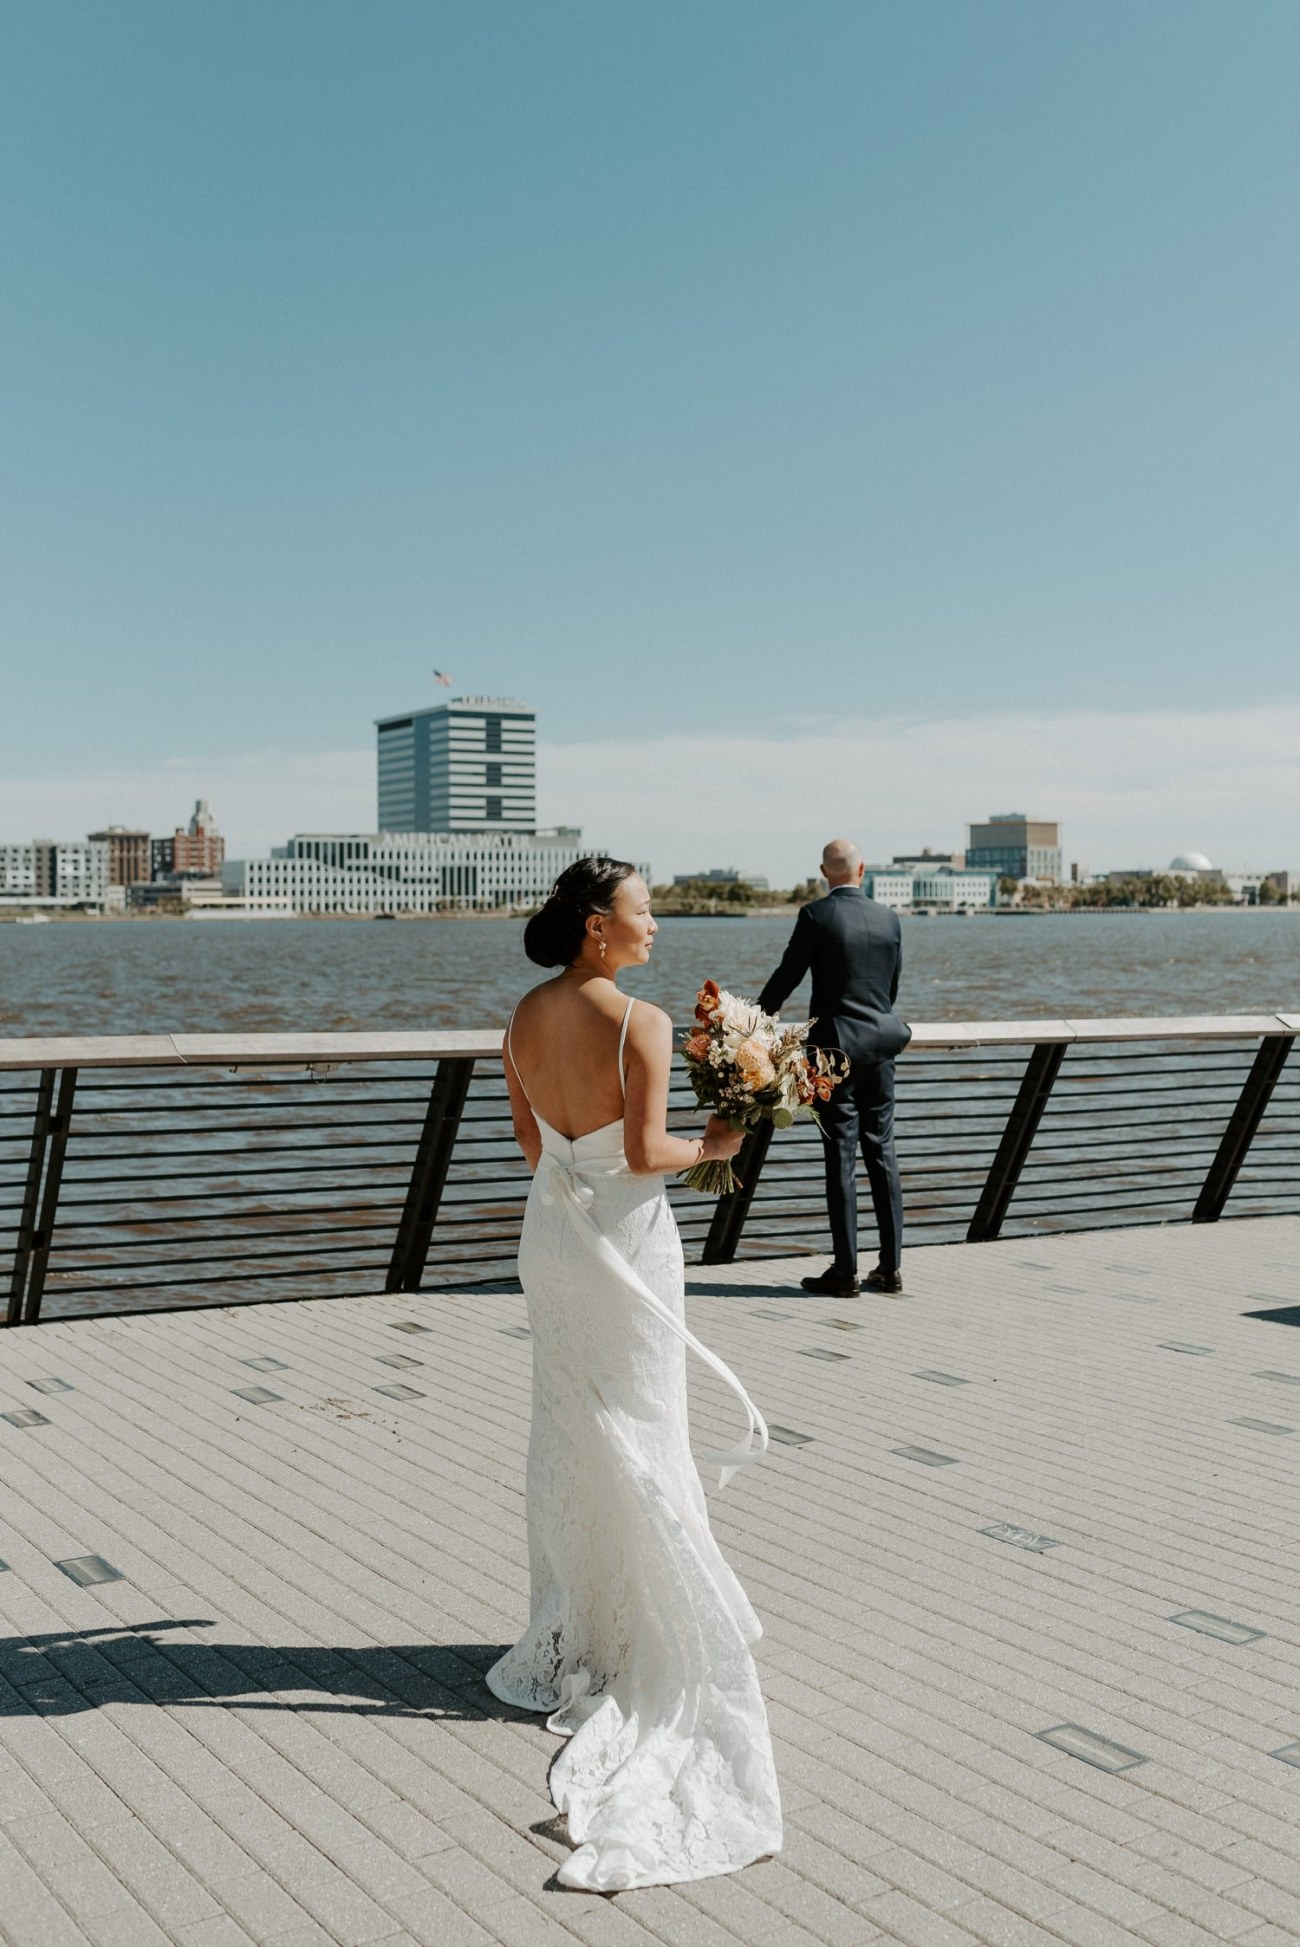 Bride and Groom first look at Penn's Landing in Philadelphia. Independence Seaport Museum Philadelphia Wedding Anais Possamai Photography New Jersey Wedding Photographer 011